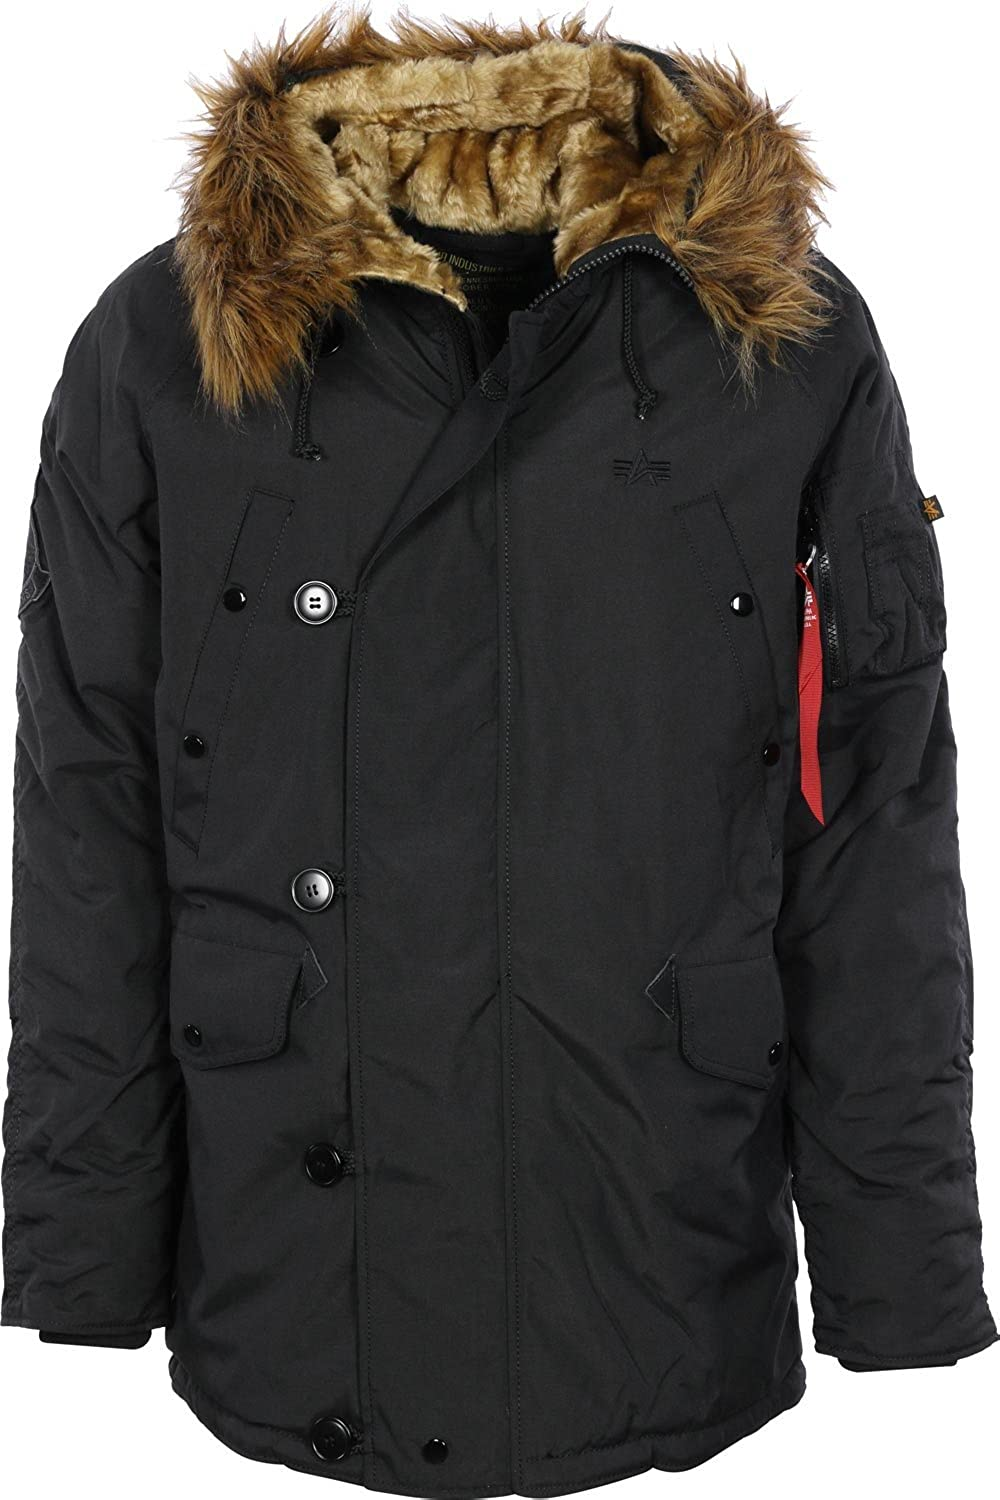 ALPHA INDUSTRIES Jacke Explorer 193128/07